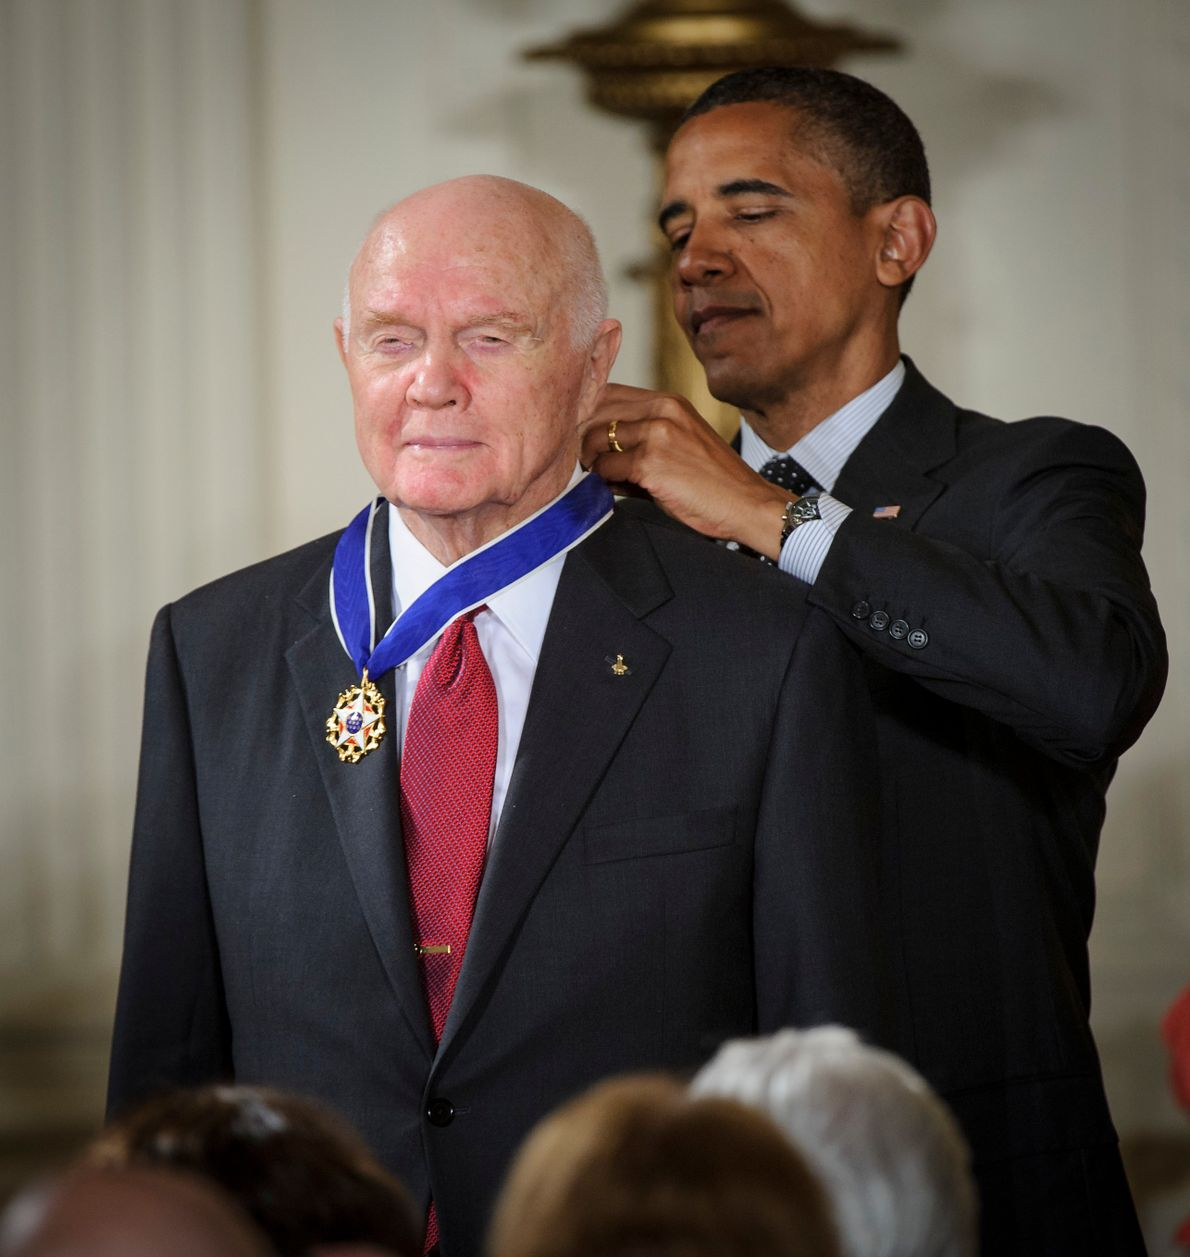 John Glenn is presented with the Presidential Medal of Freedom by Barack Obama, 2012. The son ...